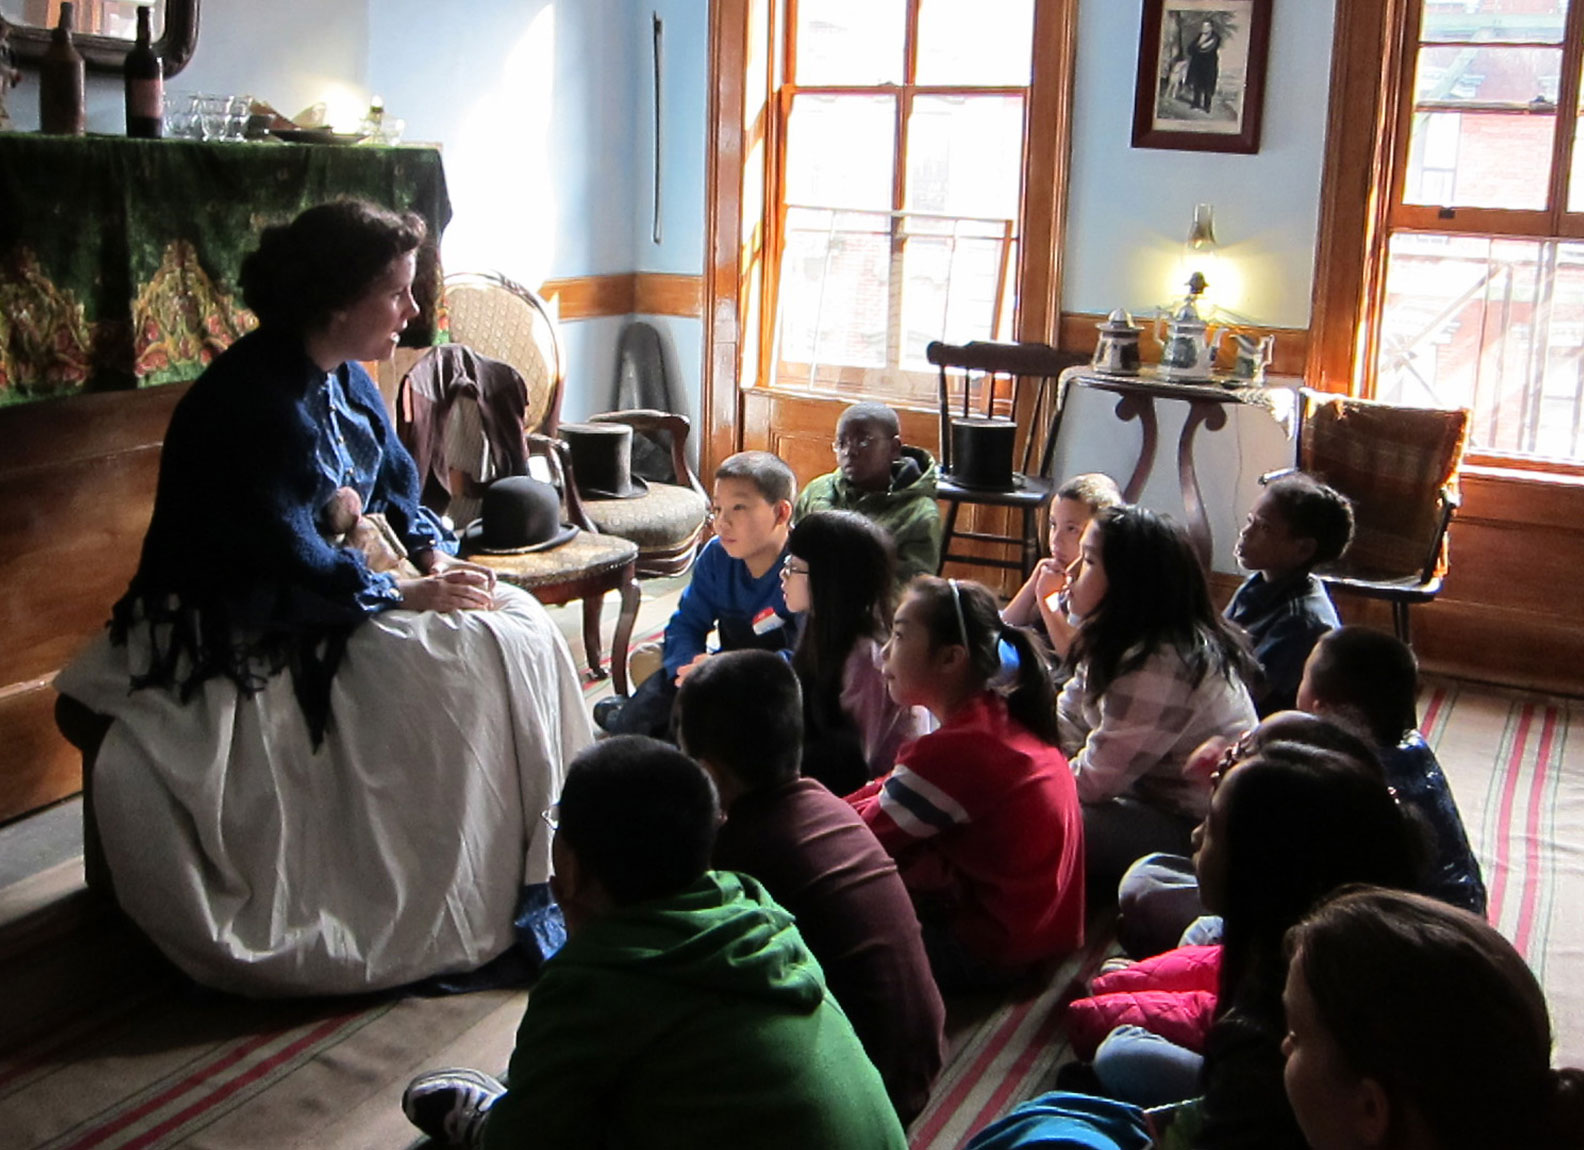 An actor in the role of Irish Immigrant Bridget Moore speaking with a group of schoolchildren.